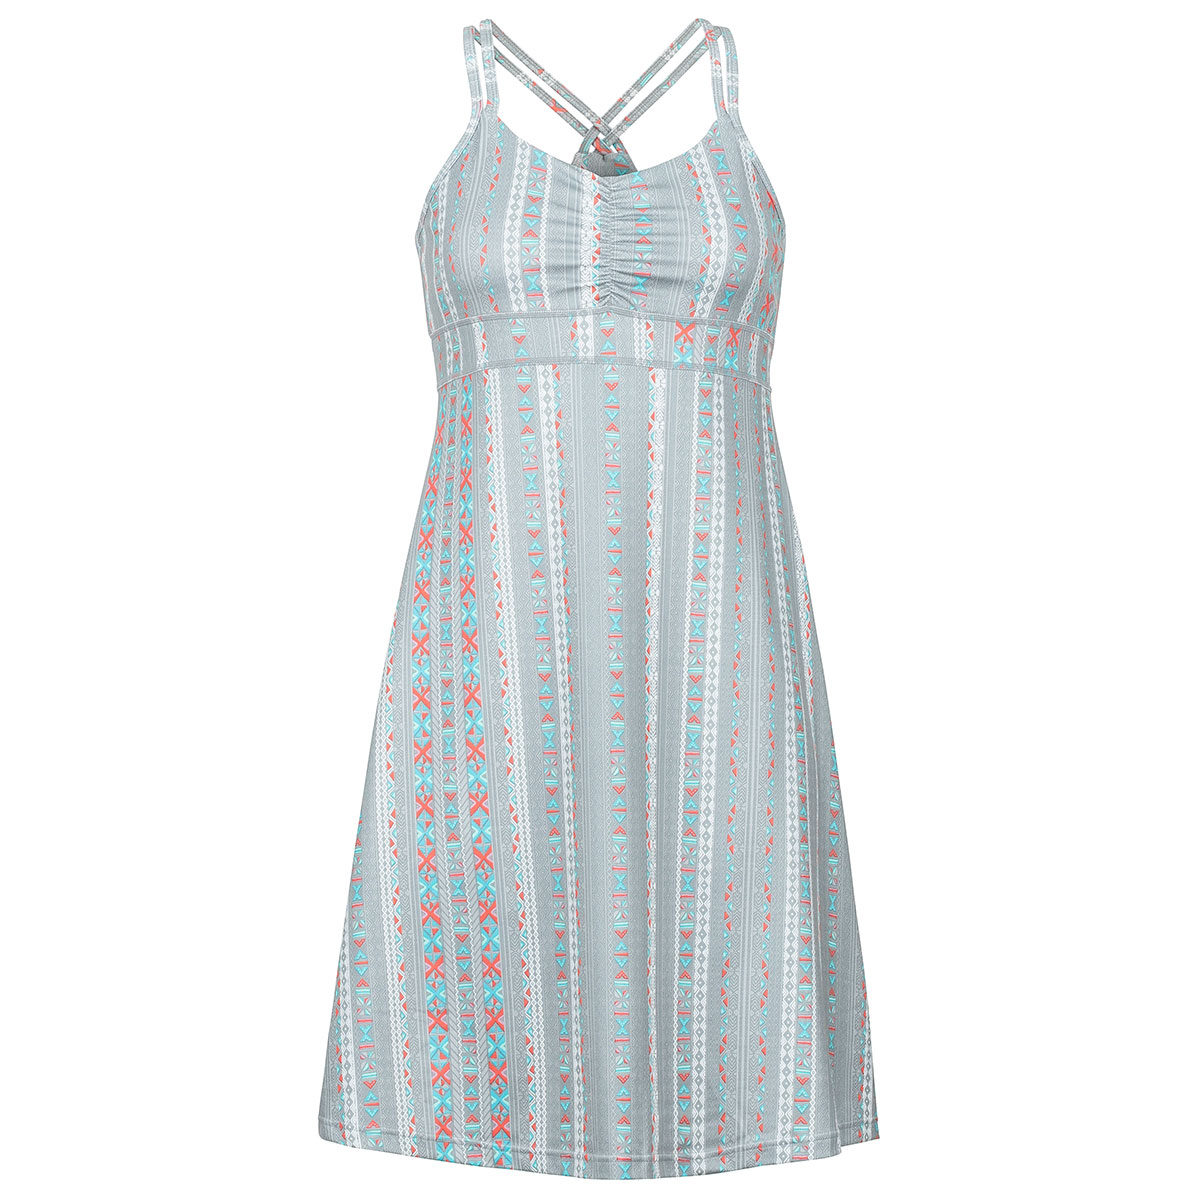 Marmot Women's Taryn Dress - White, L